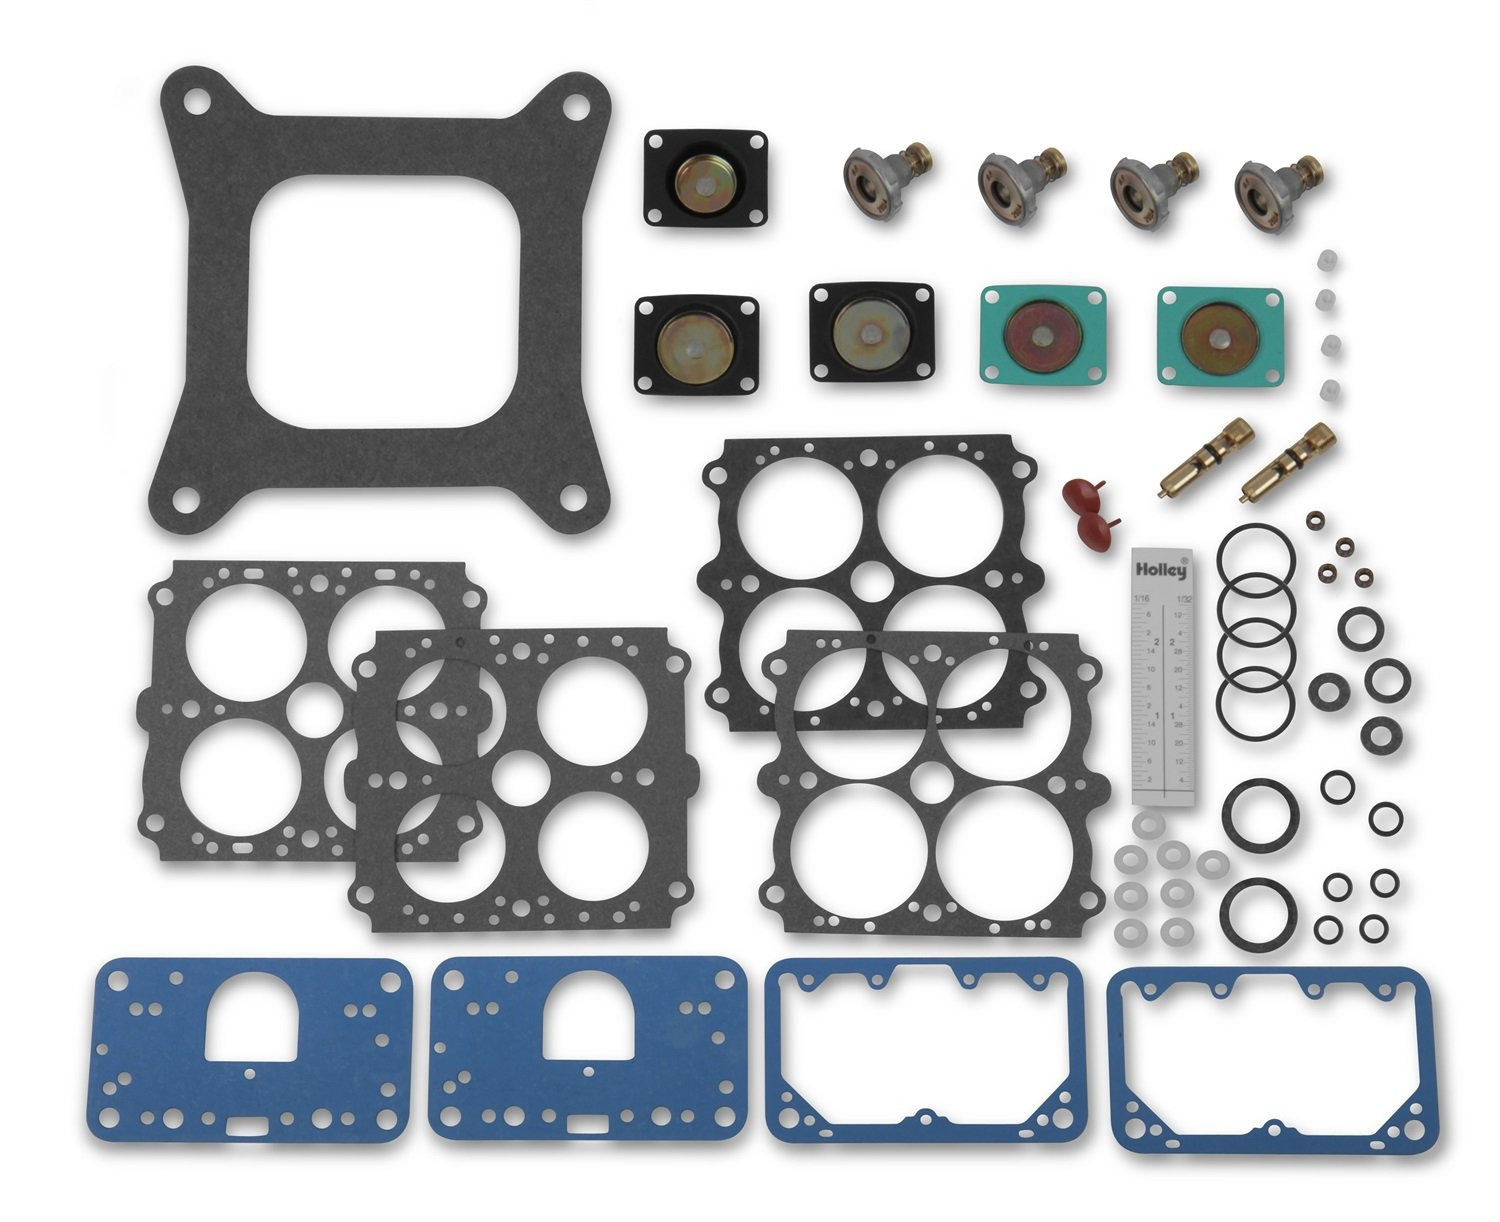 Holley 37-1546 Carburetor Fast Kit by Holley